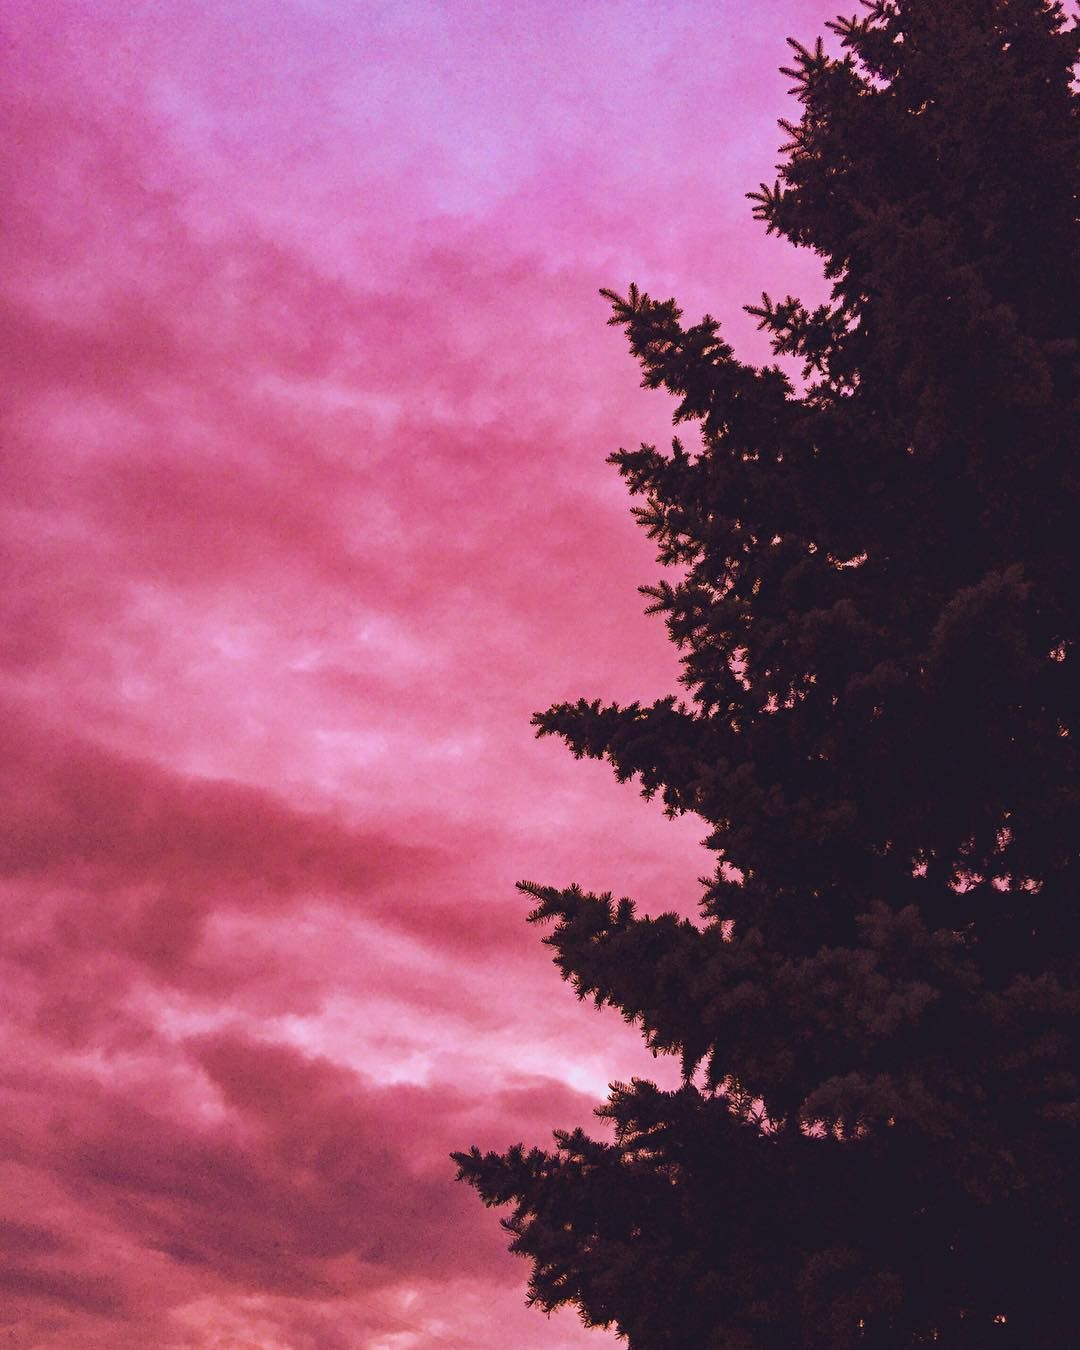 Pink Aesthetic Nature Tree Newyeartree Calm Inspiration